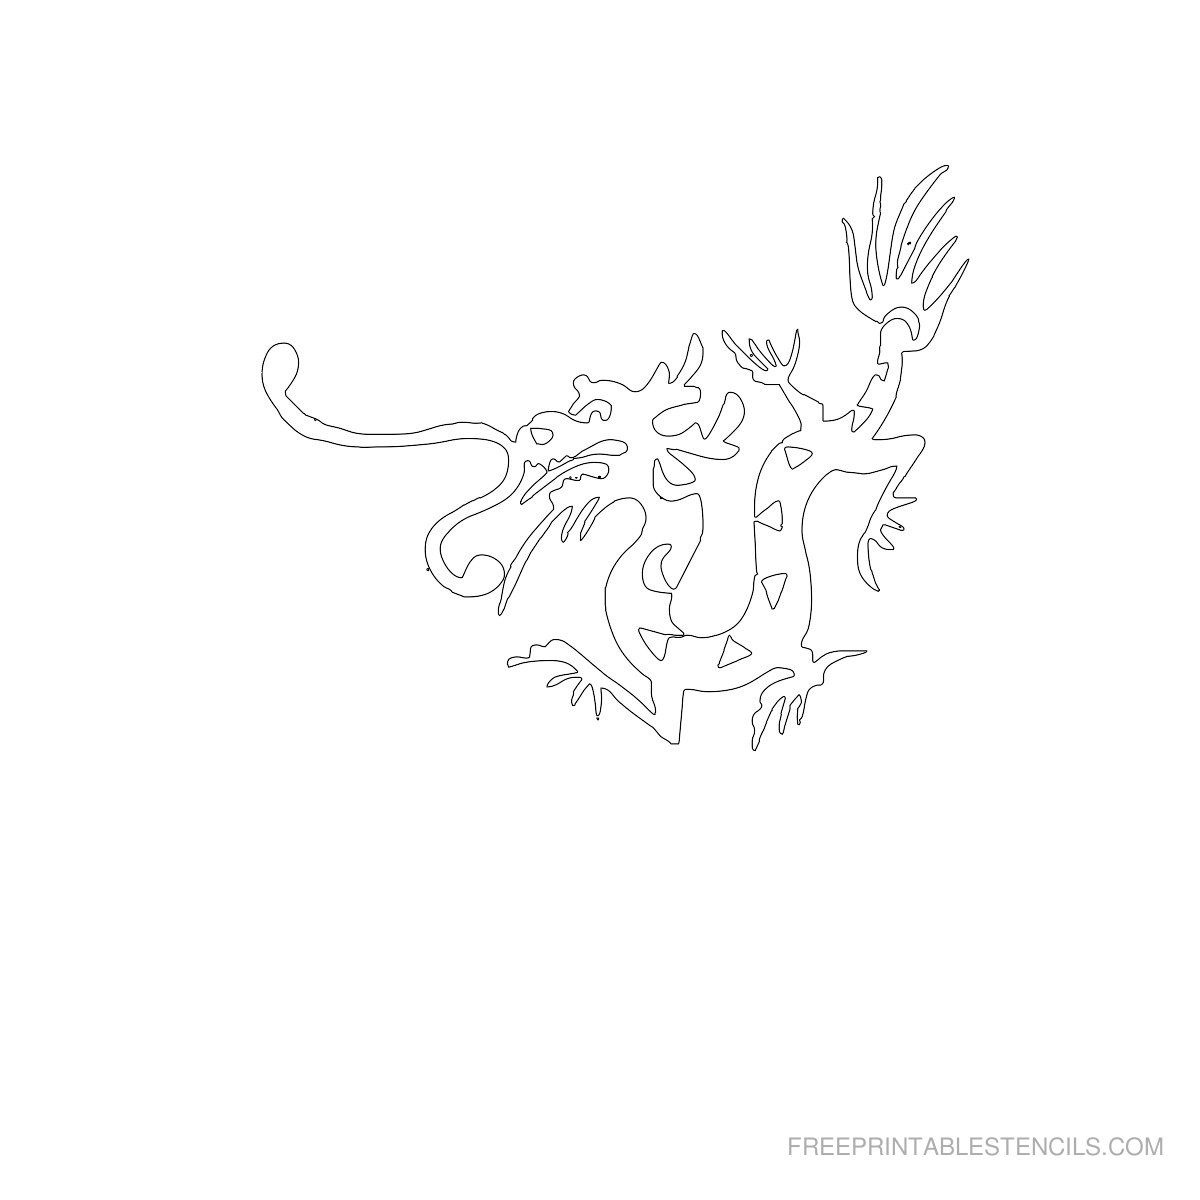 Free Printable Dragon Stencil C | Crafts To Try | Stencils - Free Printable Dragon Stencils